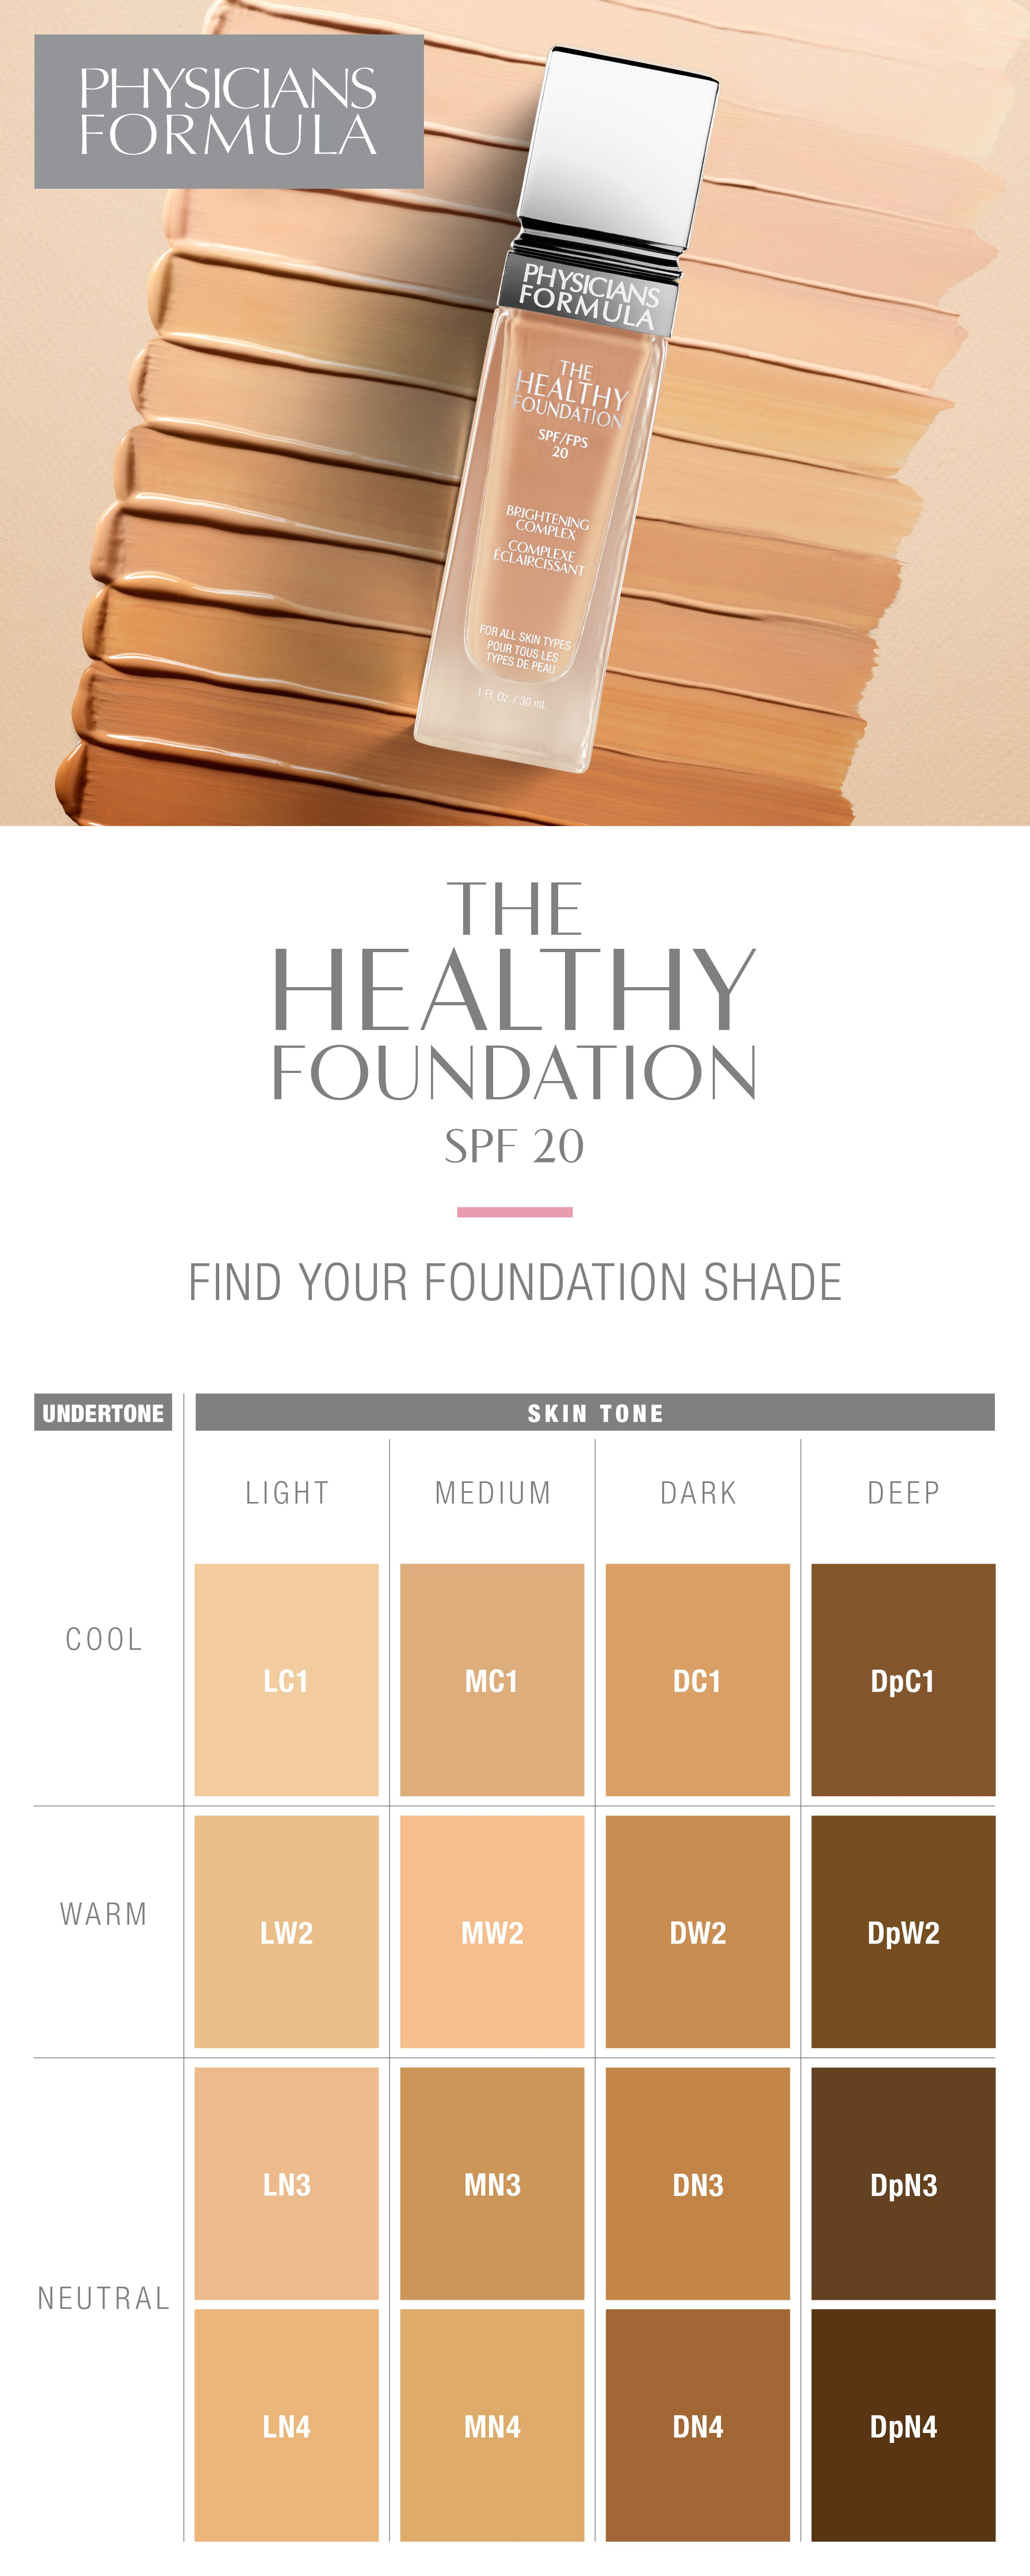 Say hello to physicians formulas first ever full color range say hello to physicians formulas first ever full color range foundation line nvjuhfo Images